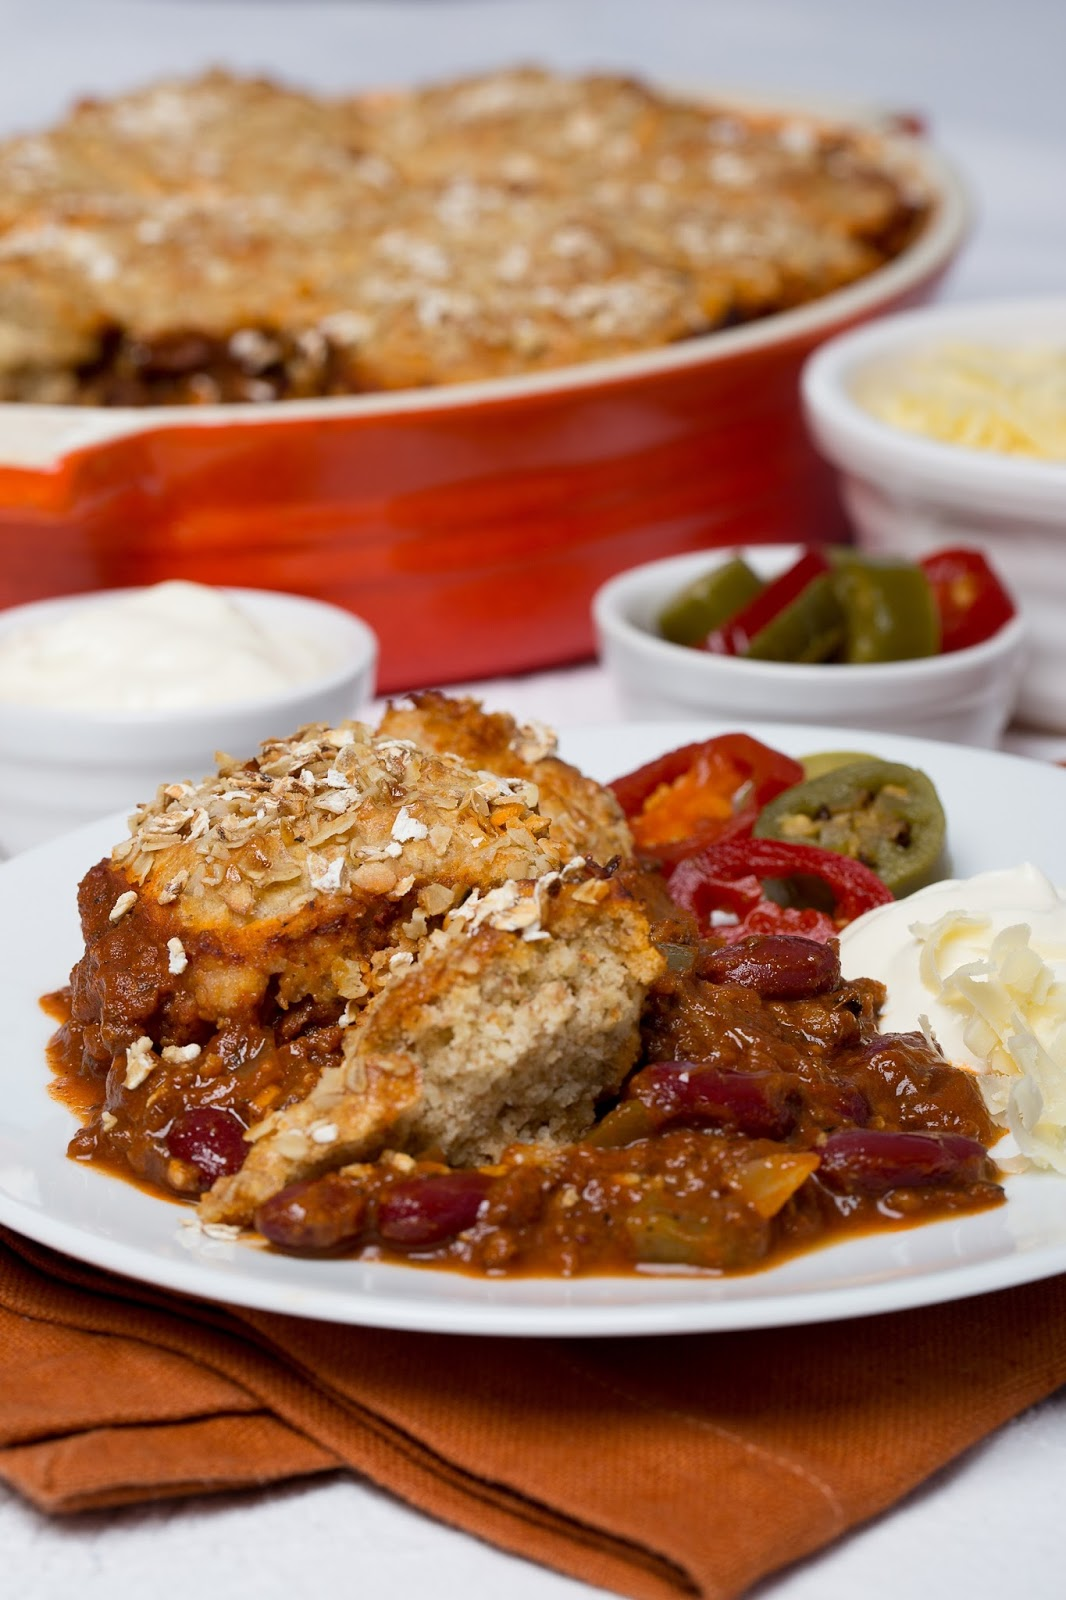 How To Make Chilli Beef Oat Cobbler